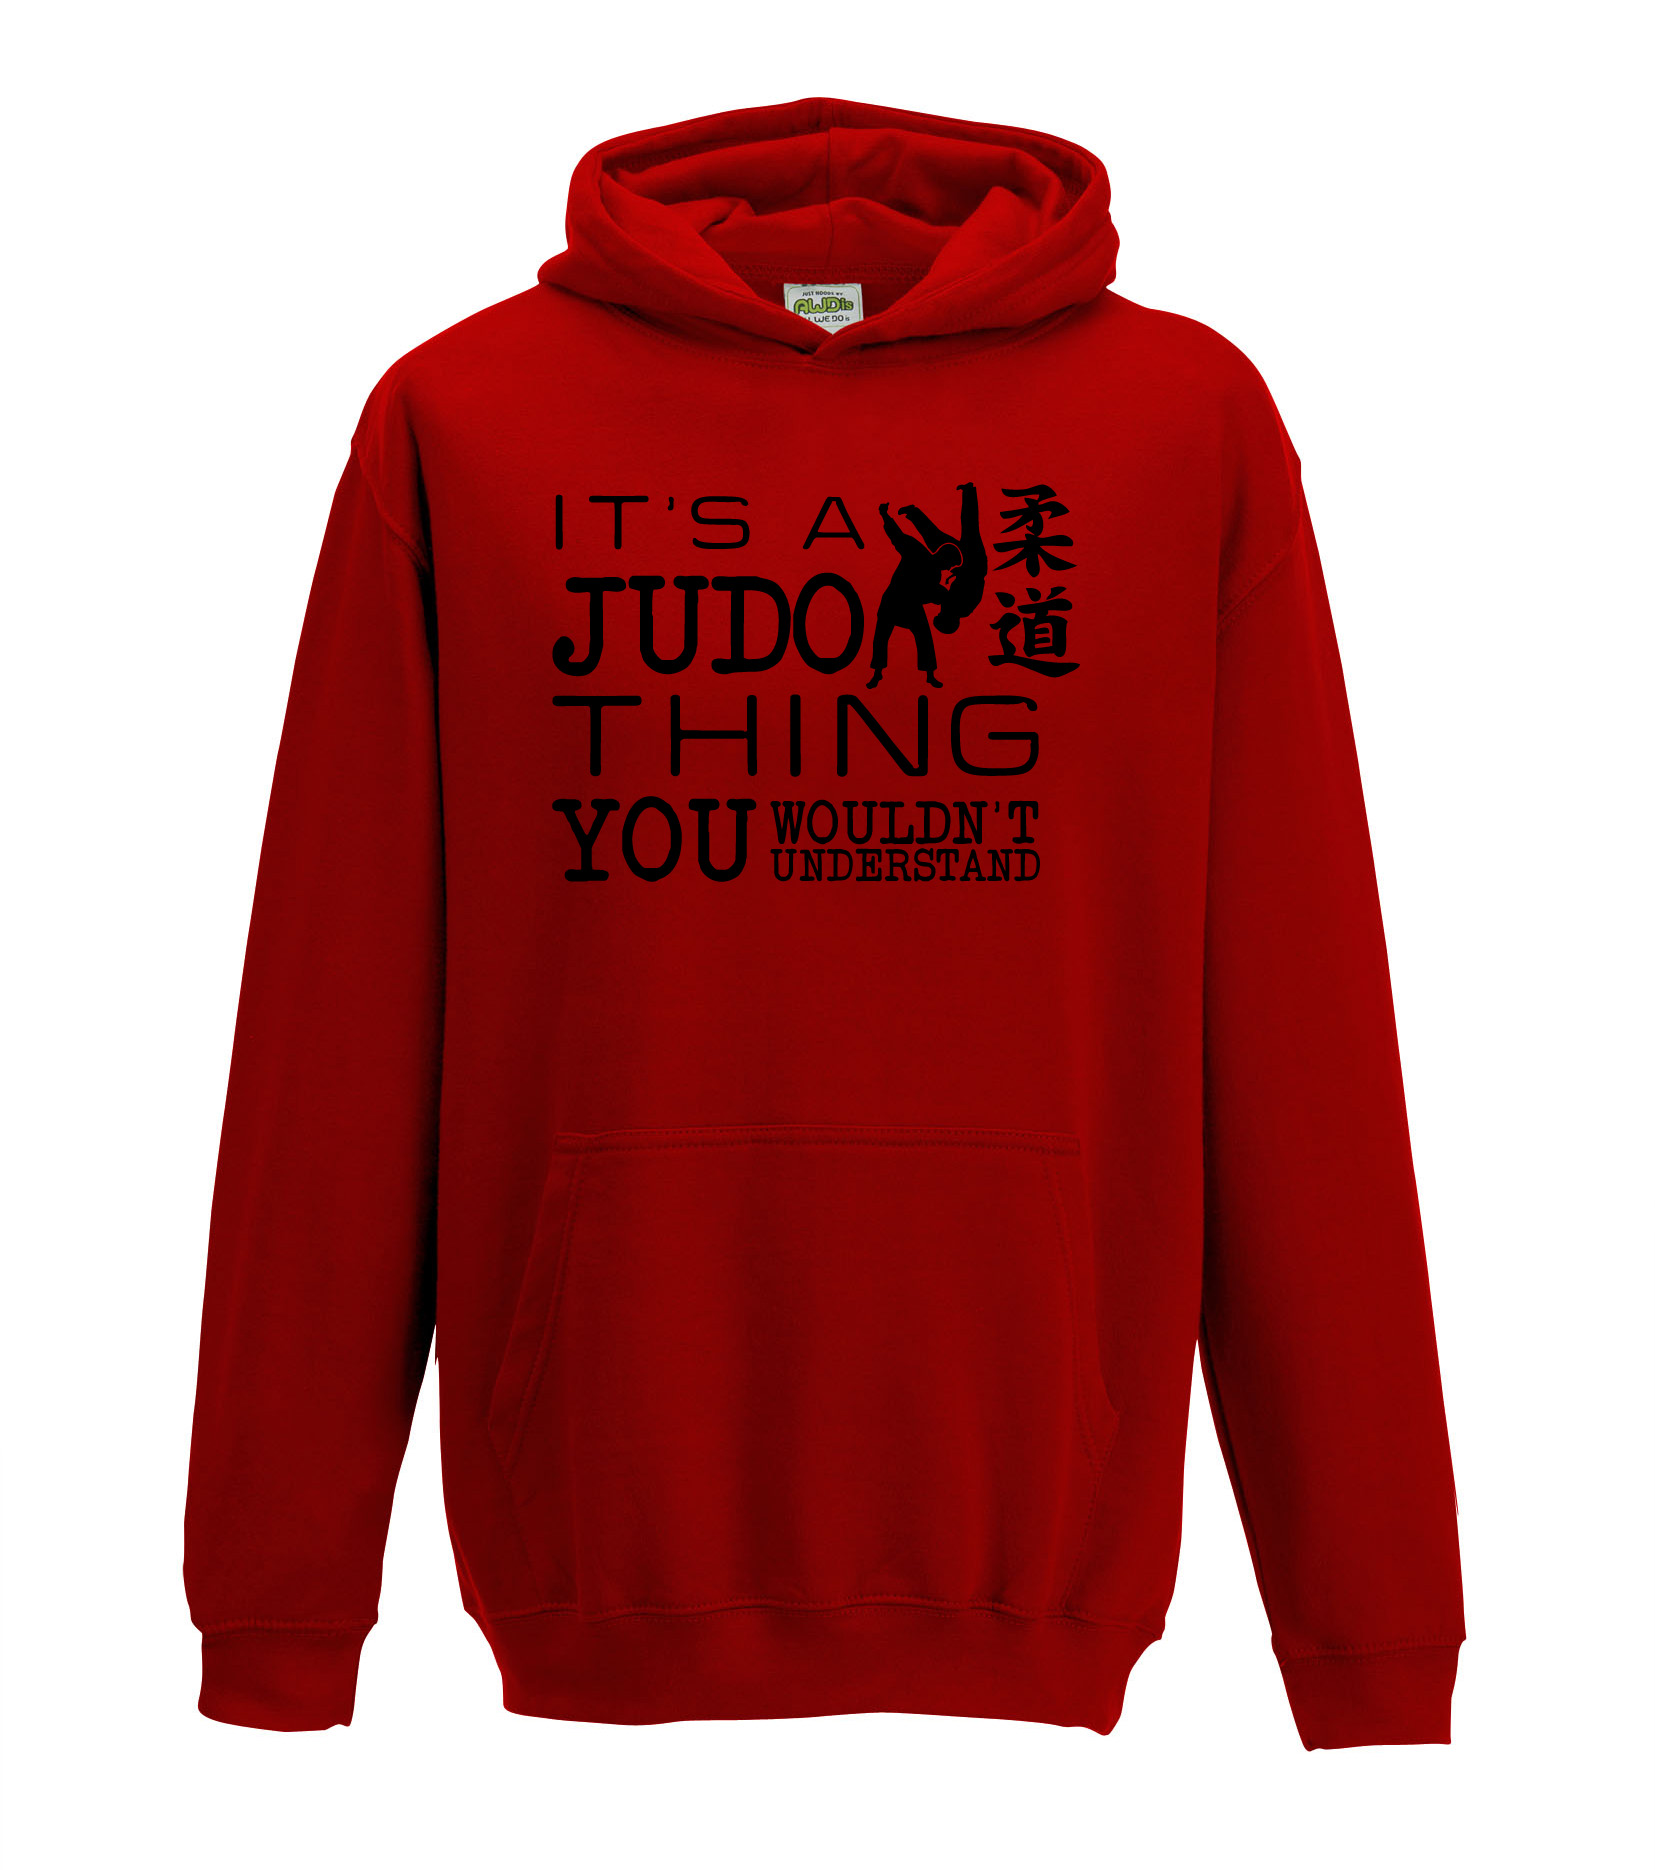 Details about It's A Judo Thing You Wouldn't Understand Martial Arts 1320  Hoodie